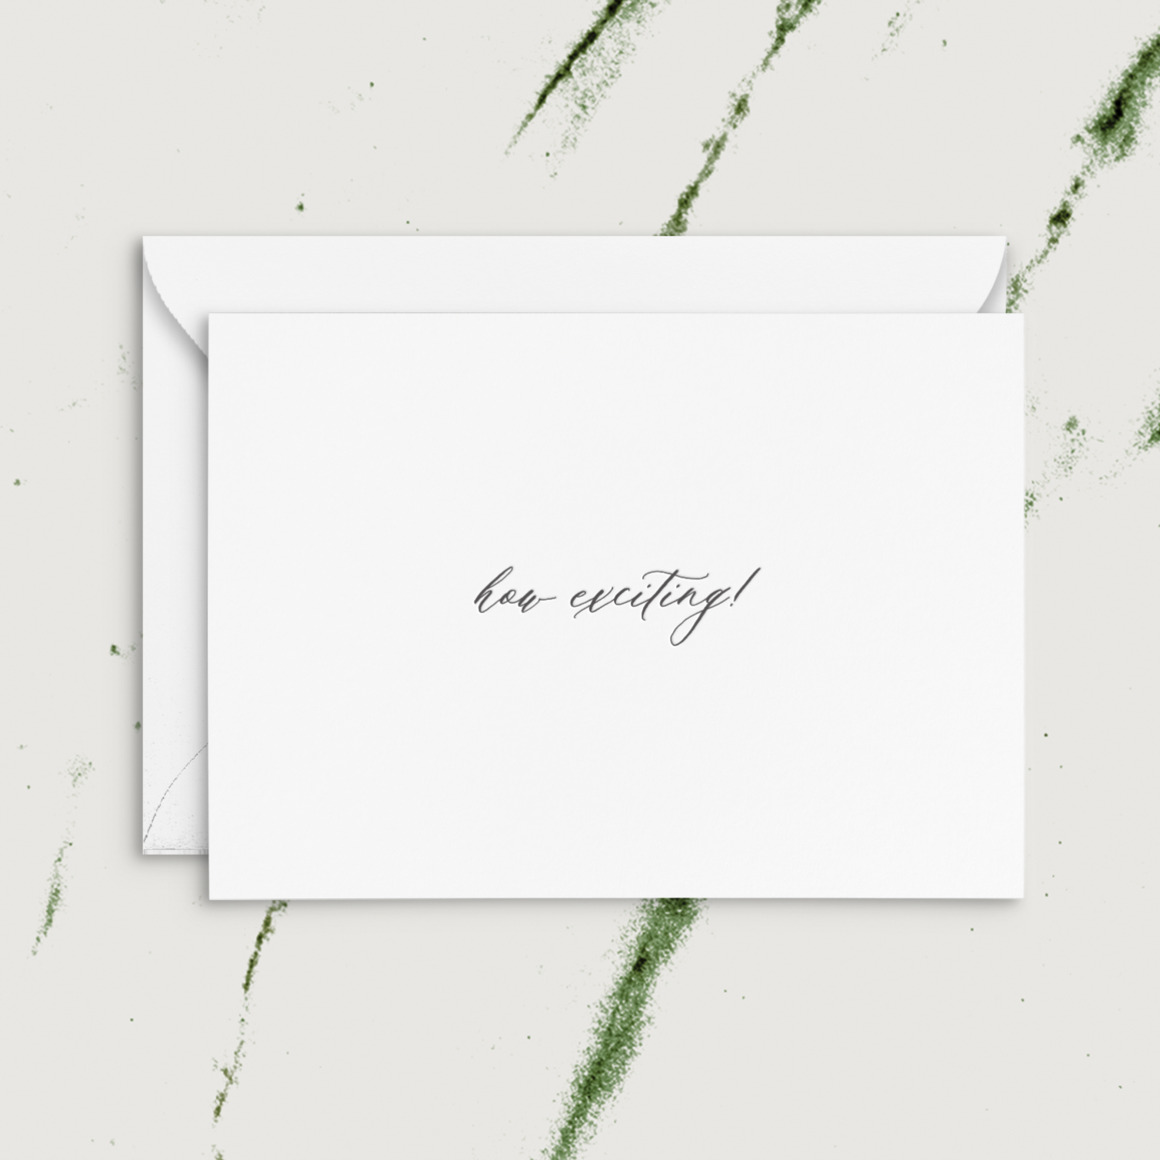 How Exciting!   Letterpress Greeting Card   Trada Marketplace